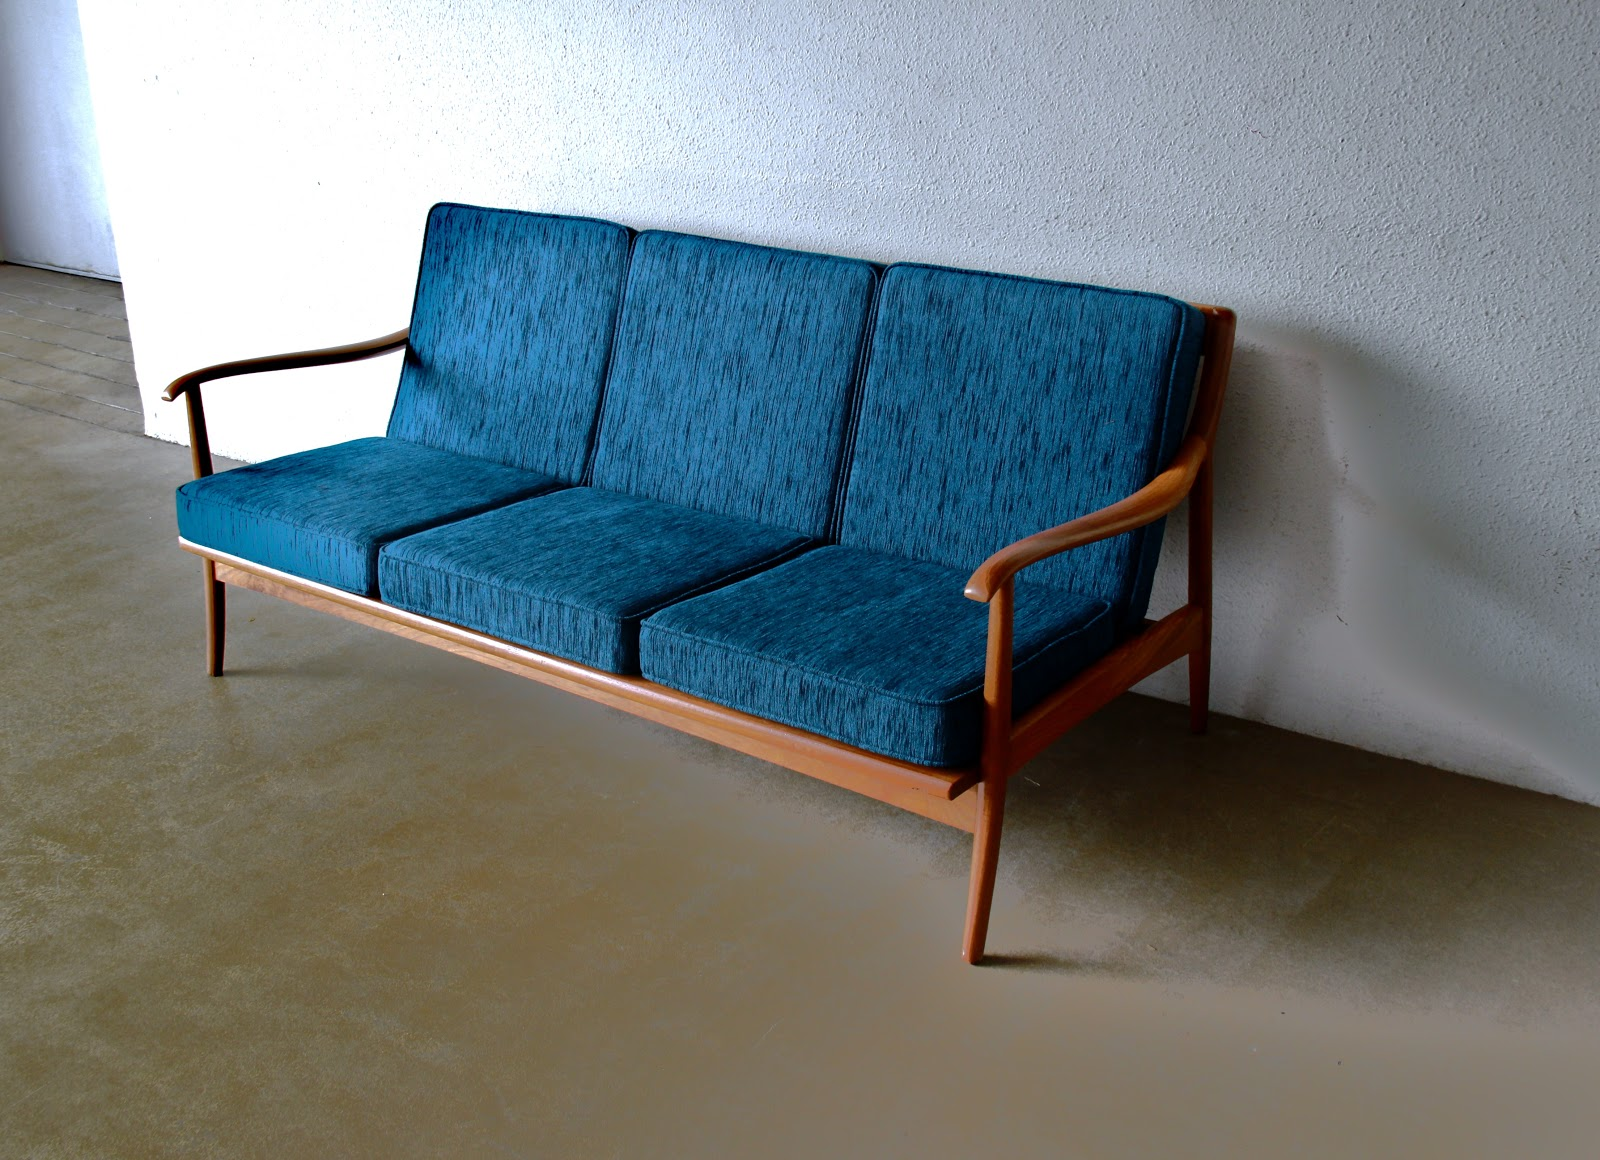 Retro Sofa Singapore The Current Craze For Industrial Furniture Some Vintage